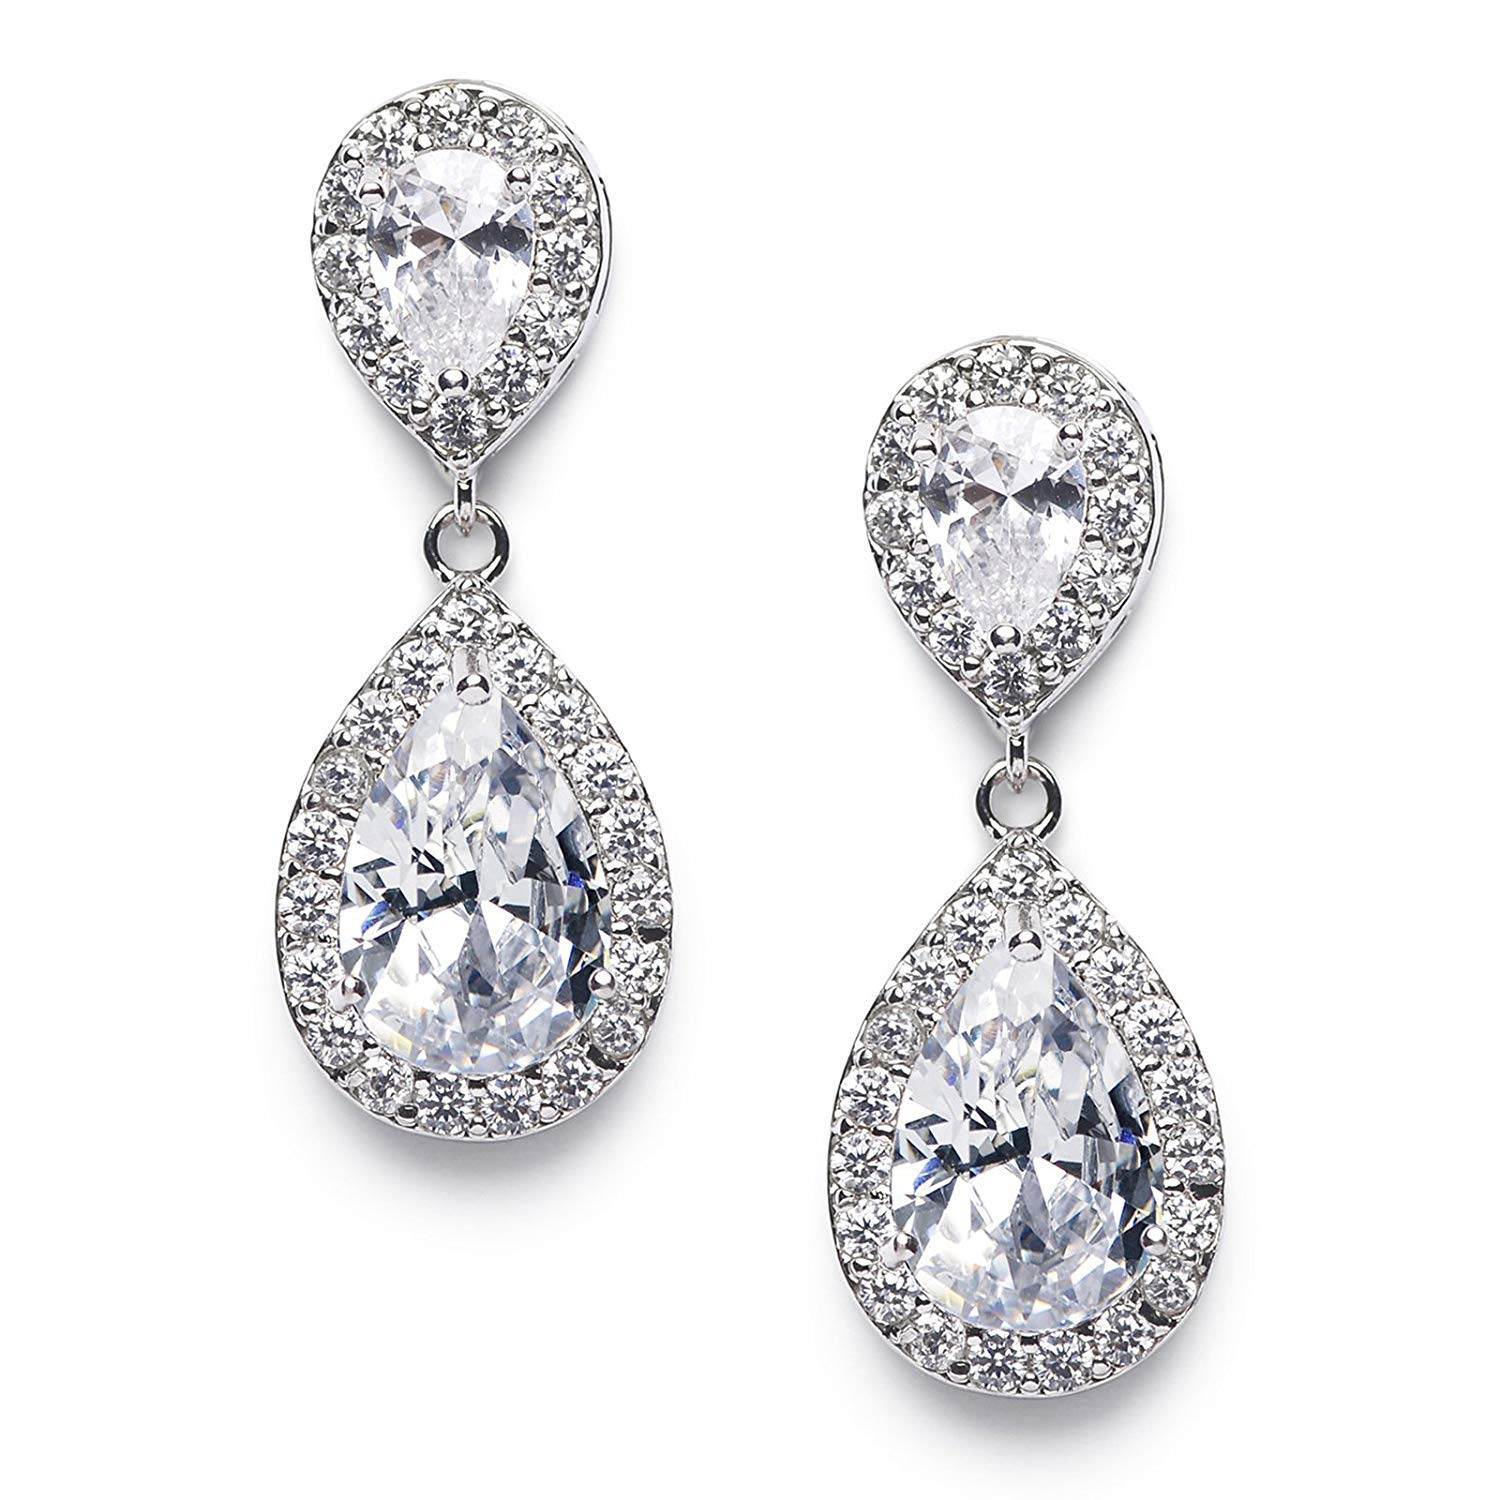 Trendy Jewelry 4 Pairs resin flower Cut Out Carvings Earring,Pave Rhinestone,Drop Dangle Earrings Jewelry For women gift ER793